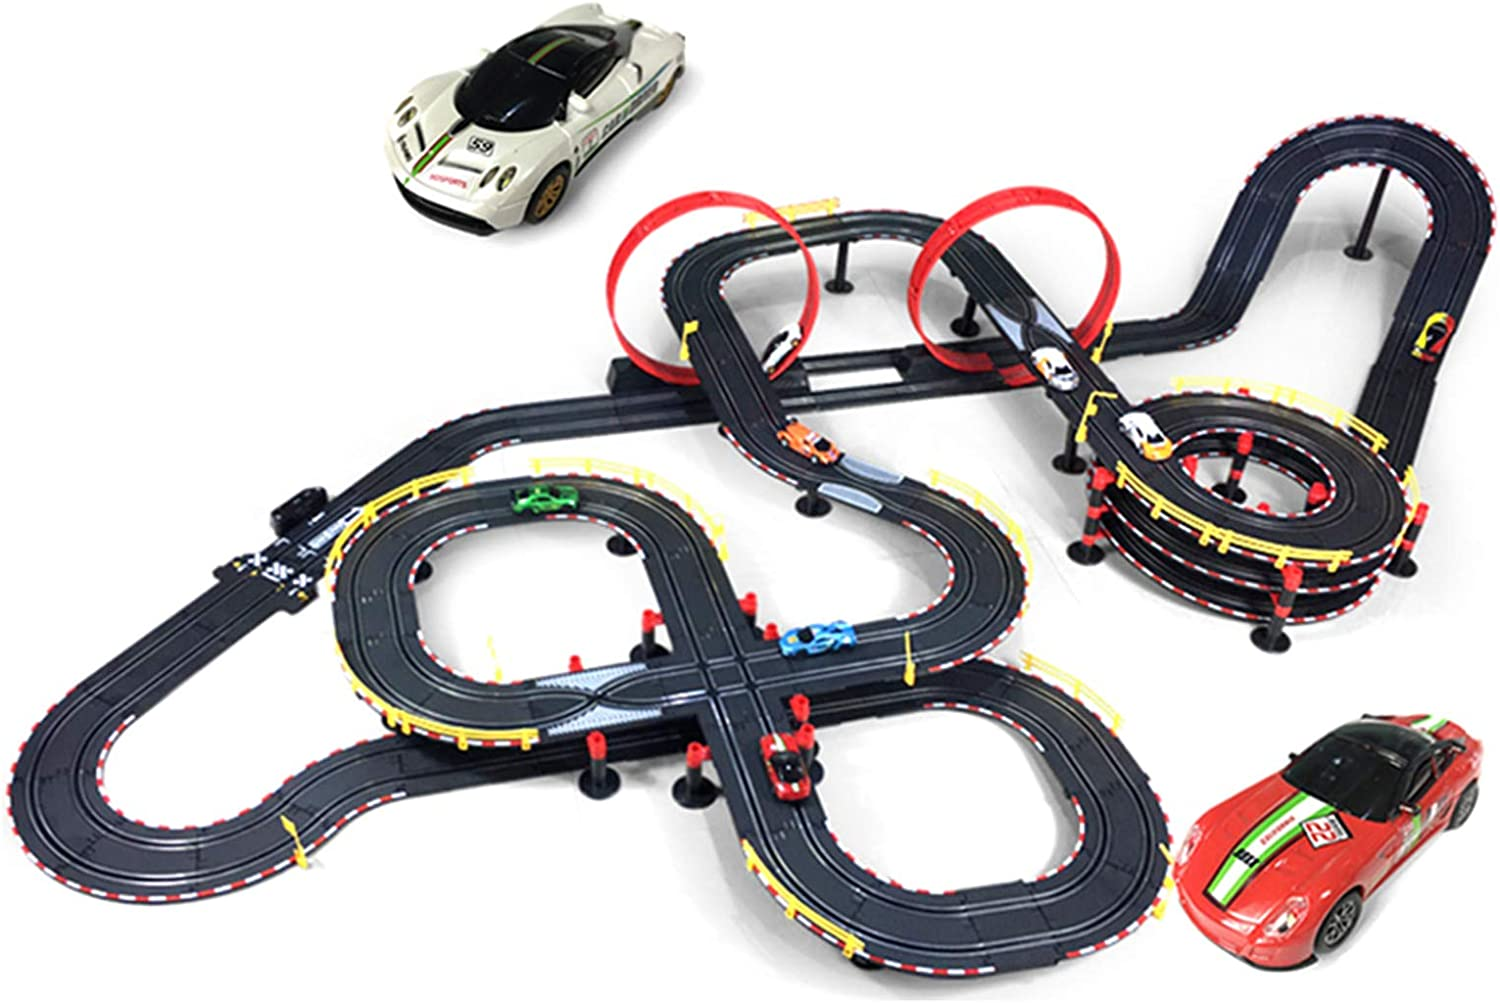 LINGLING Track Racing Toy Slot Car Vehicle Race Sets Electric Re